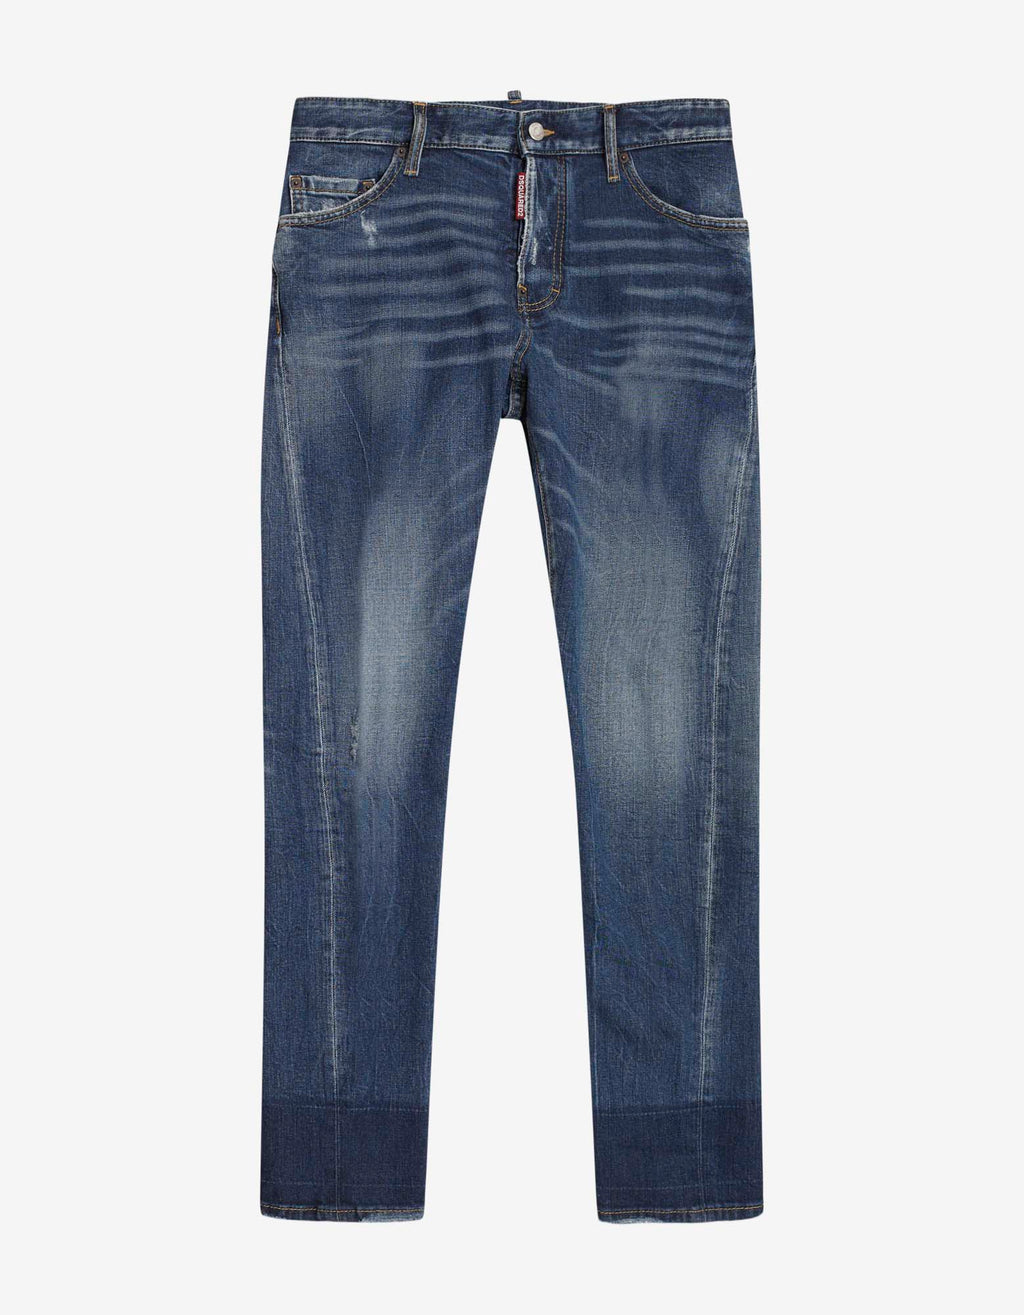 Blue Distressed Sexy Twist Jeans